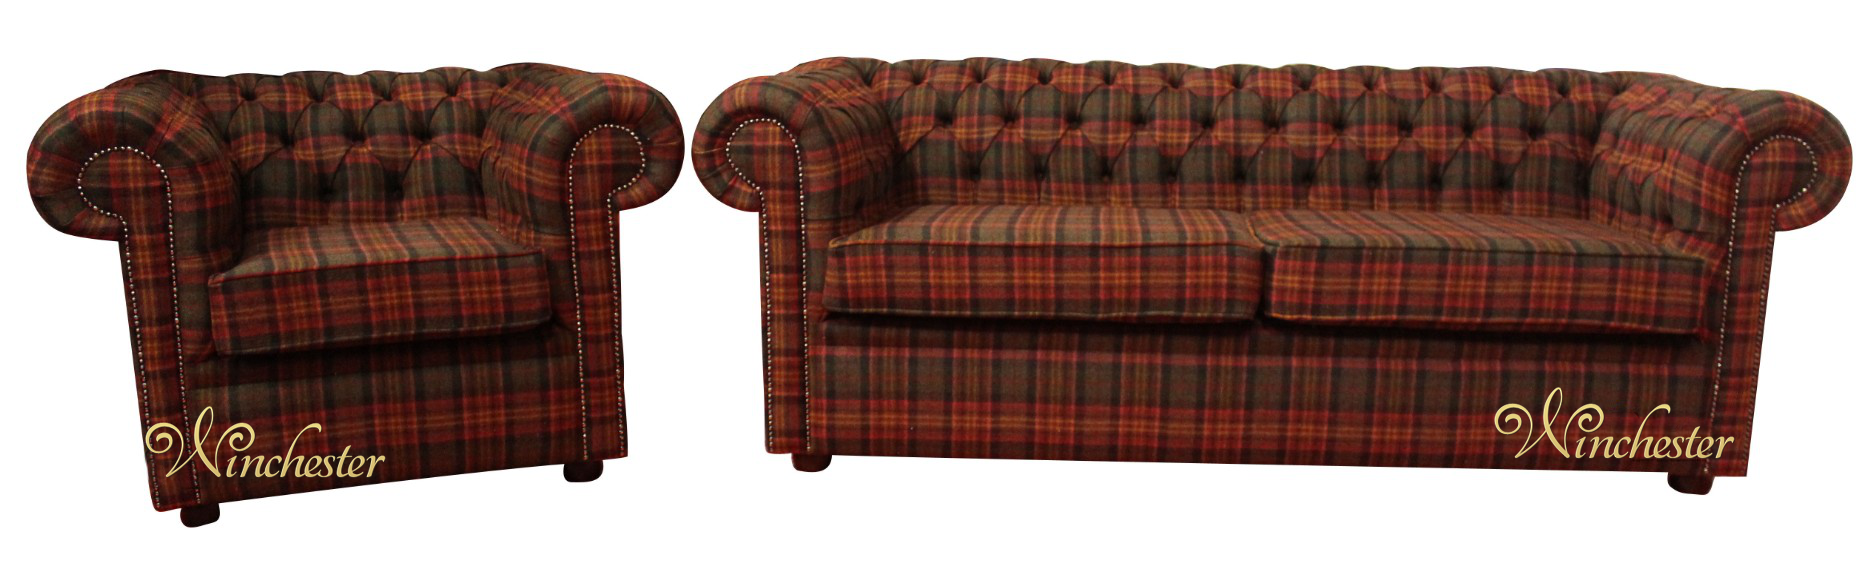 chesterfield arnold wool 3 seater sofa settee club chair tweed sandringham mandarin check fabric